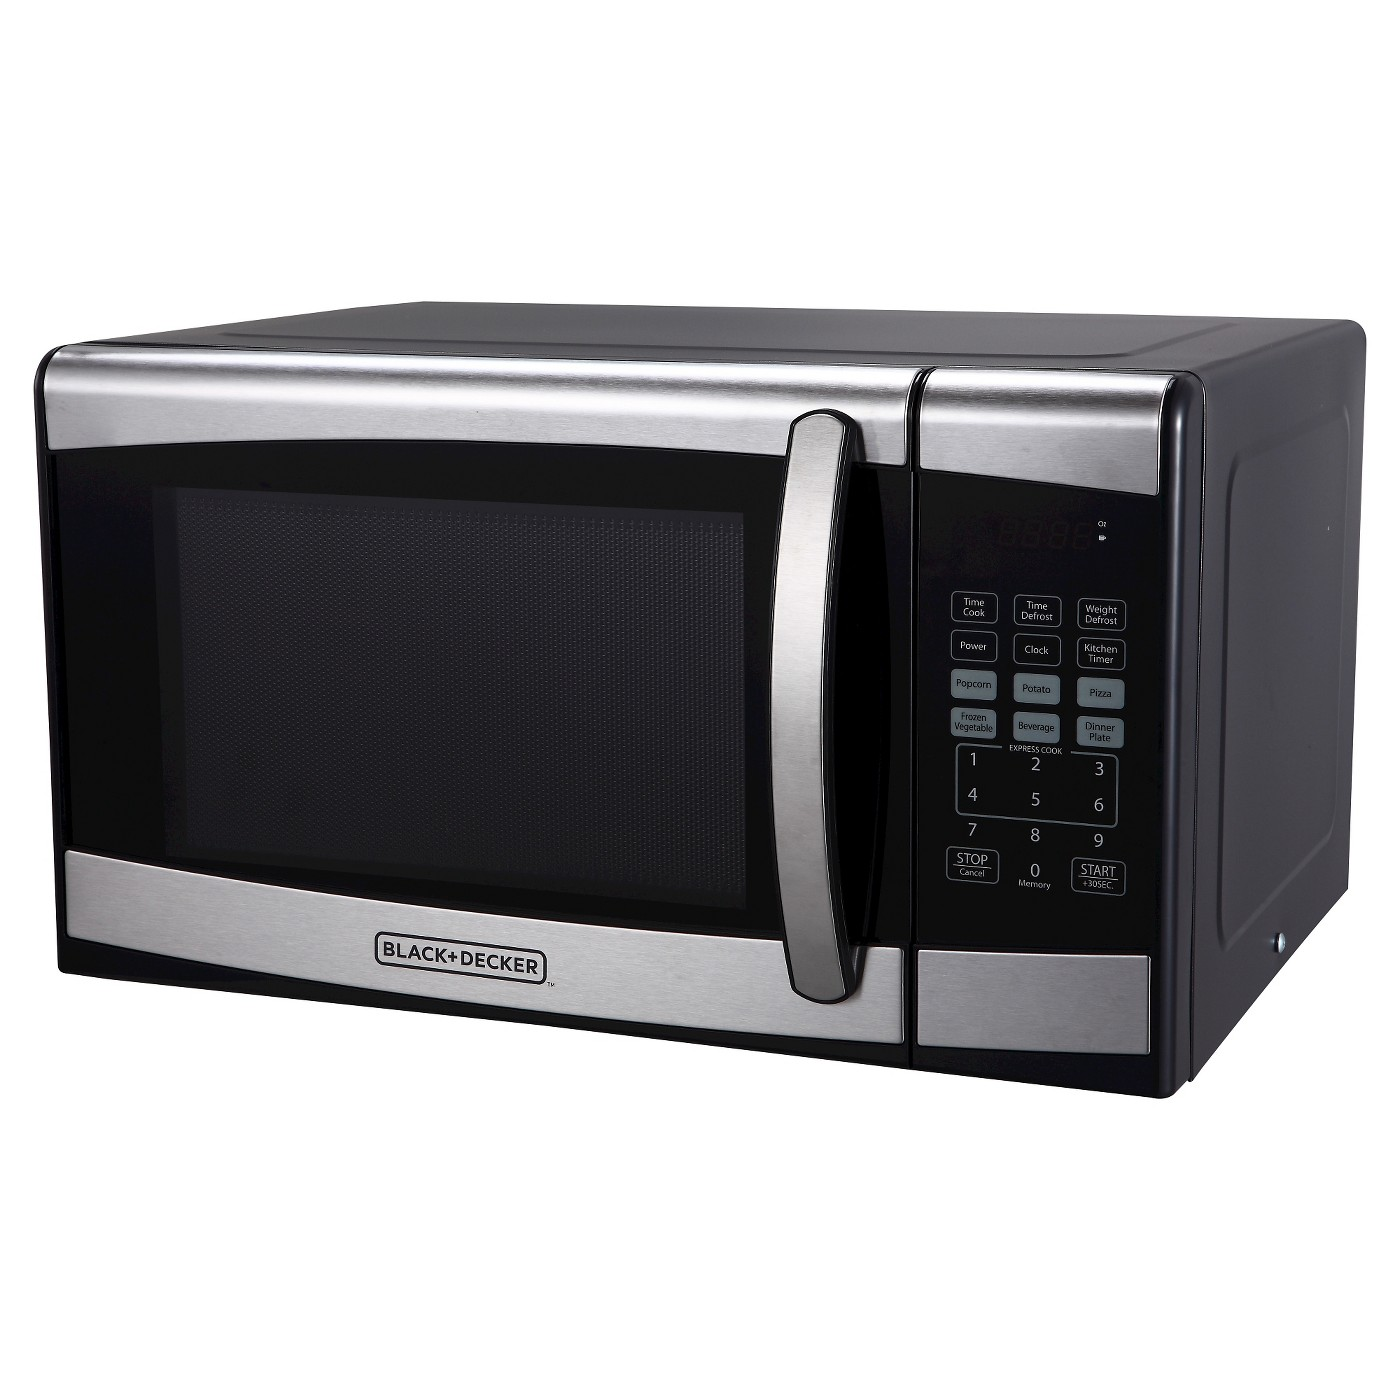 BLACK+DECKER 0.9 cu ft 900W Microwave Oven - Stainless Steel EM925AZE-P - image 1 of 5